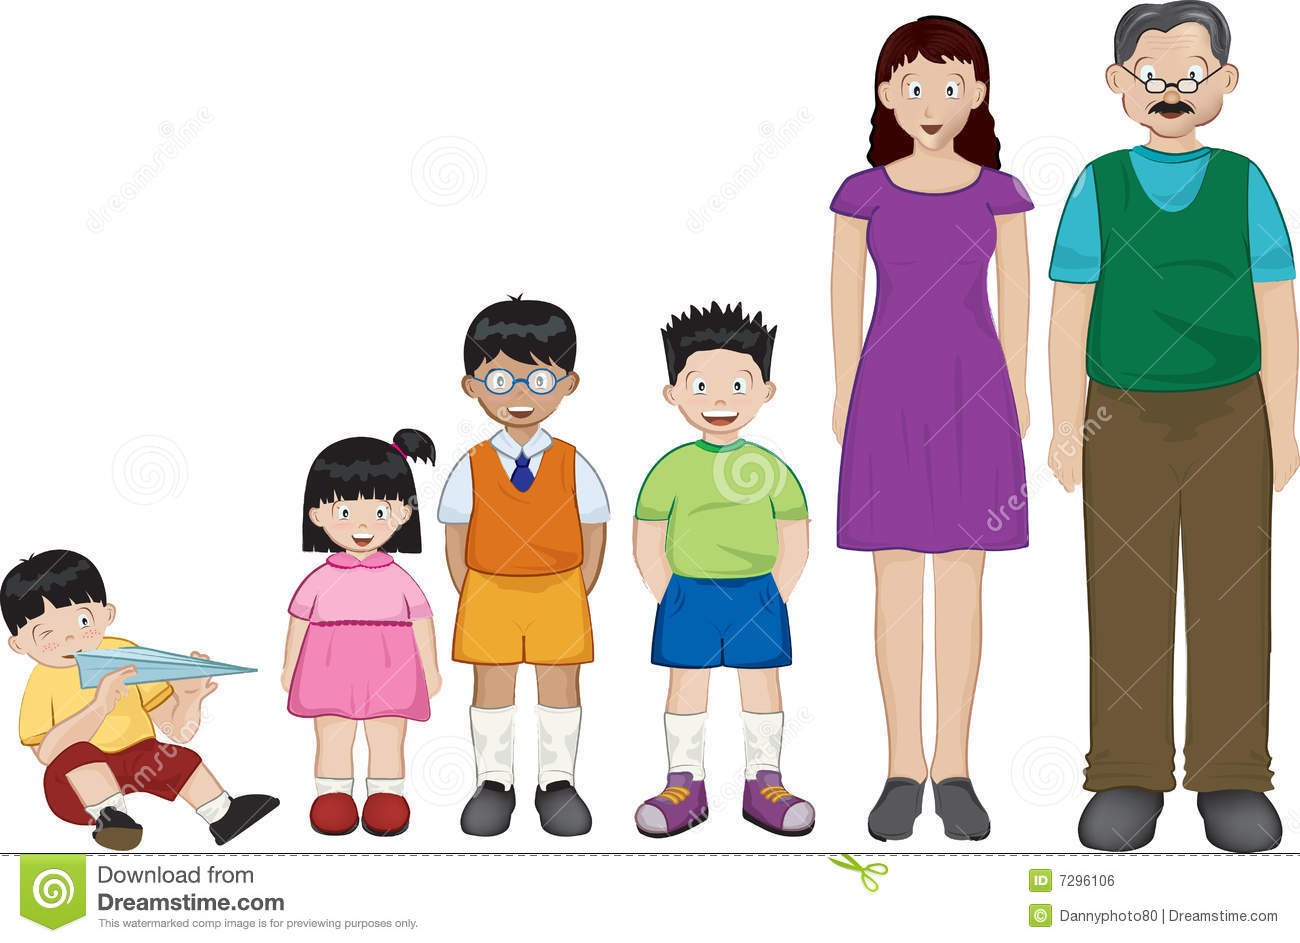 Pencil and in color. Asian clipart family member